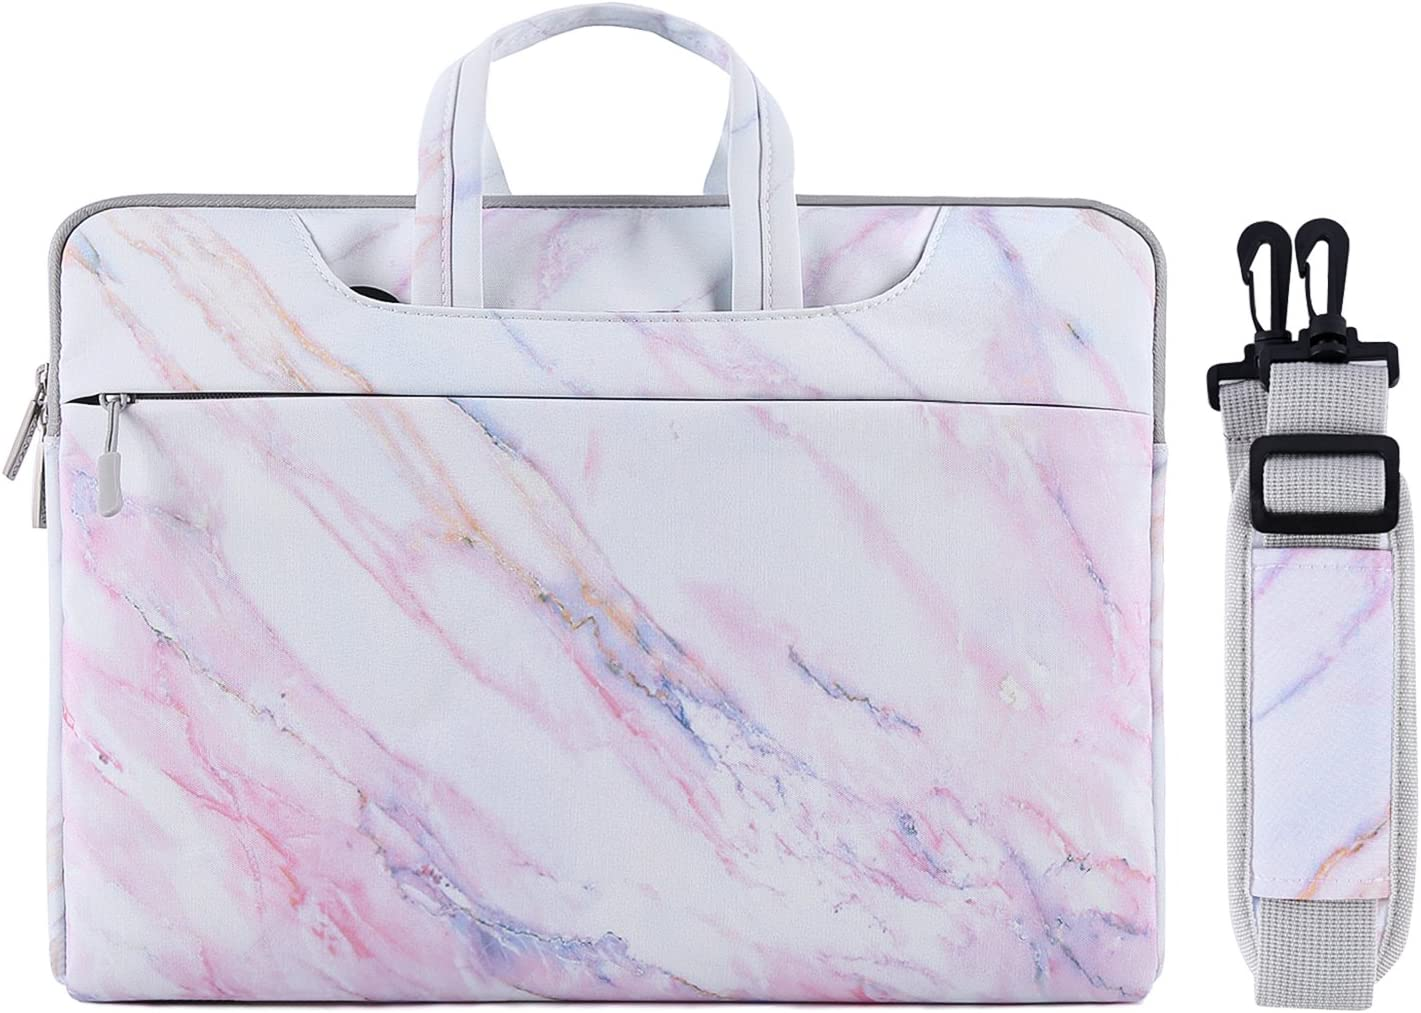 MOSISO Laptop Shoulder Bag Compatible with MacBook Pro 16 inch A2141, 15 15.4 15.6 inch Dell Lenovo HP Asus Acer Samsung Sony Chromebook, Canvas Cross Grain Marble Carrying Briefcase Sleeve Case